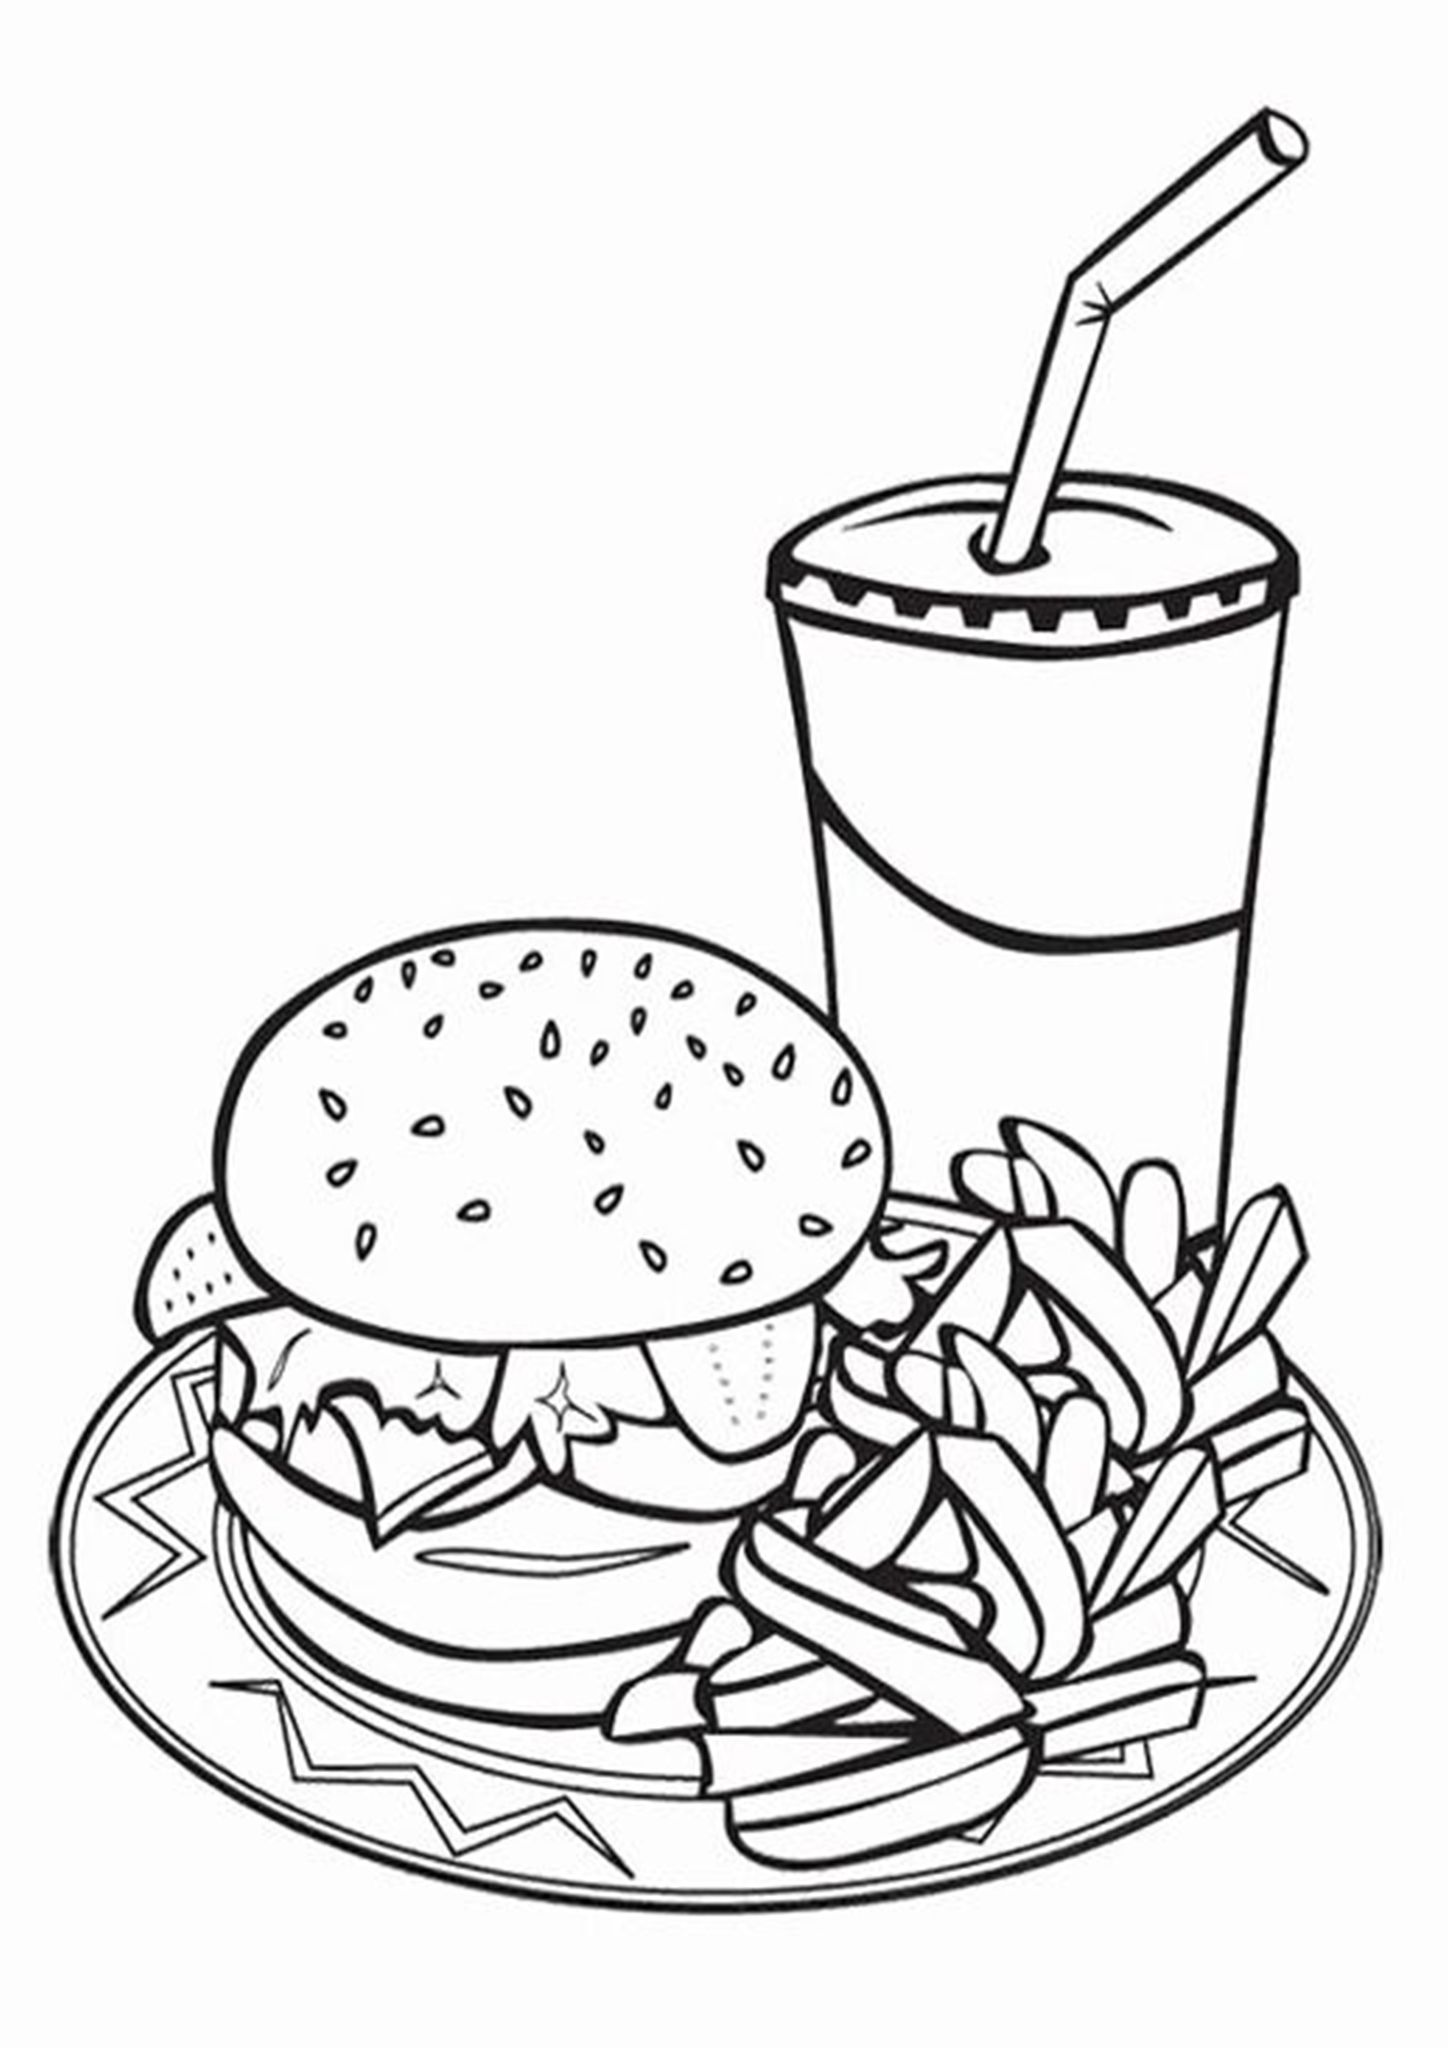 Fast Food Coloring Pages - Free Coloring Pages